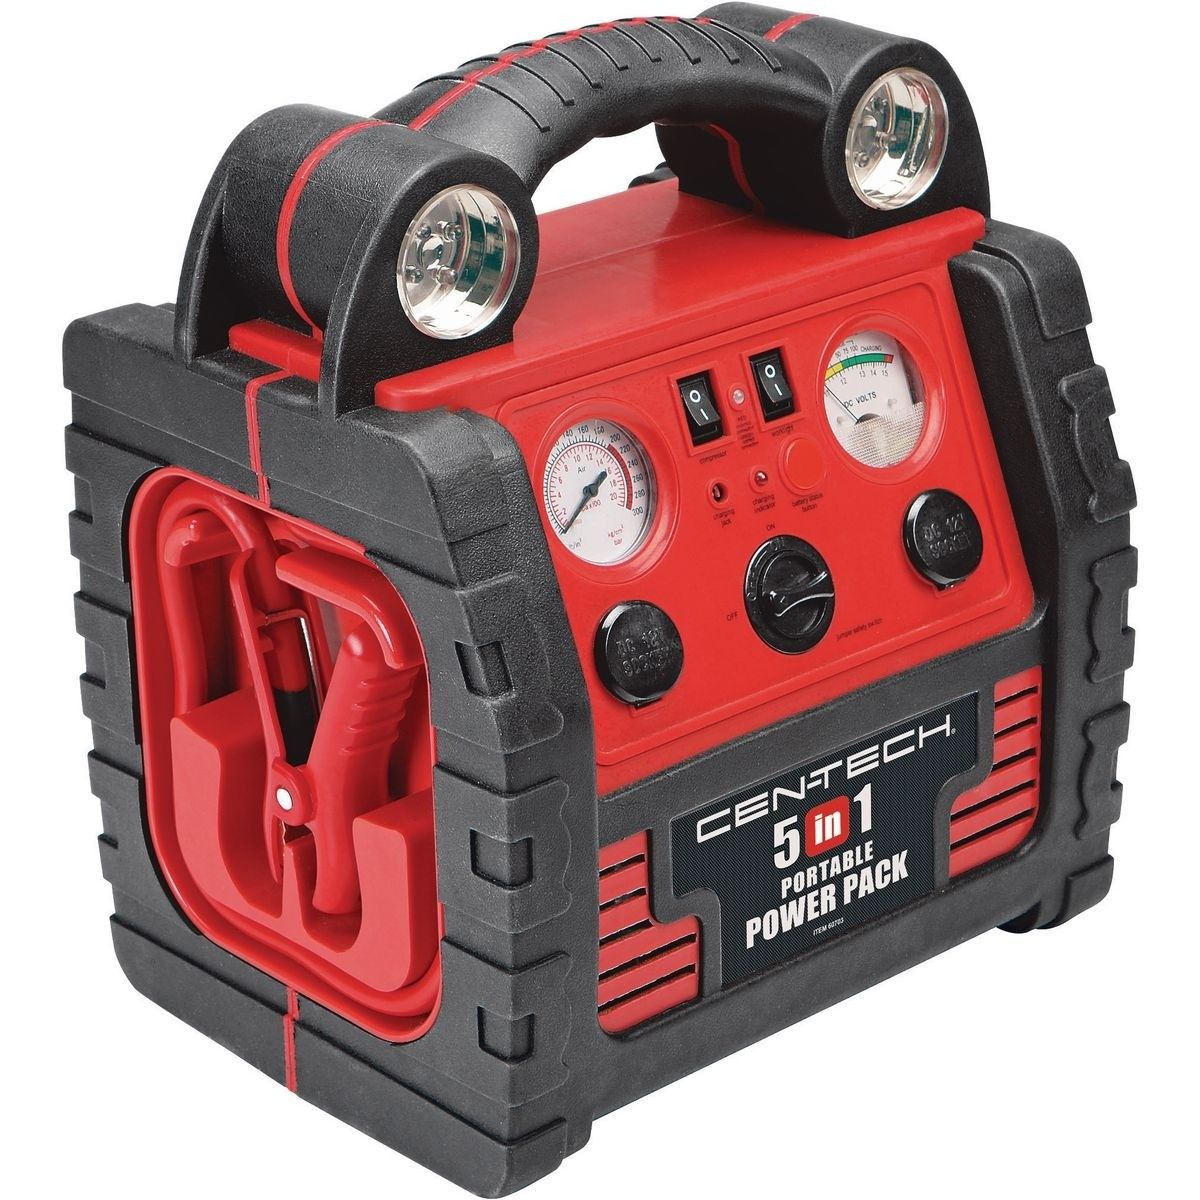 5 In 1 Power Pack With Jump Starter Compressor And Power